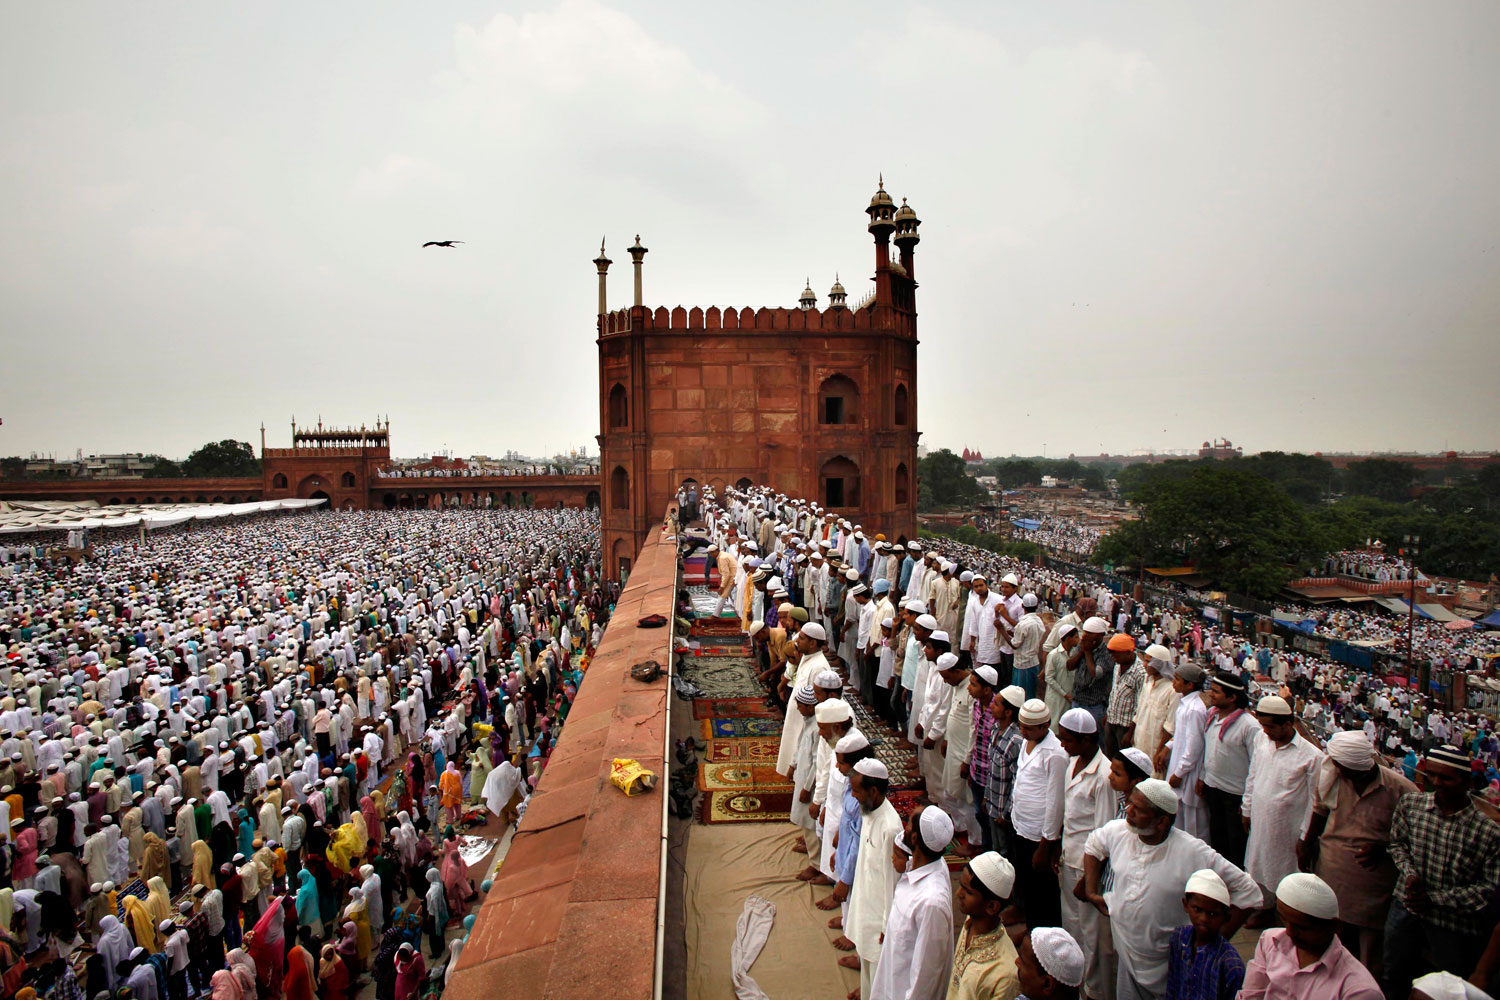 August 17, 2012. Indian Muslims offer prayer on the last Friday of the holy month of Ramadan at Jama Maszid, in New Delhi, India.